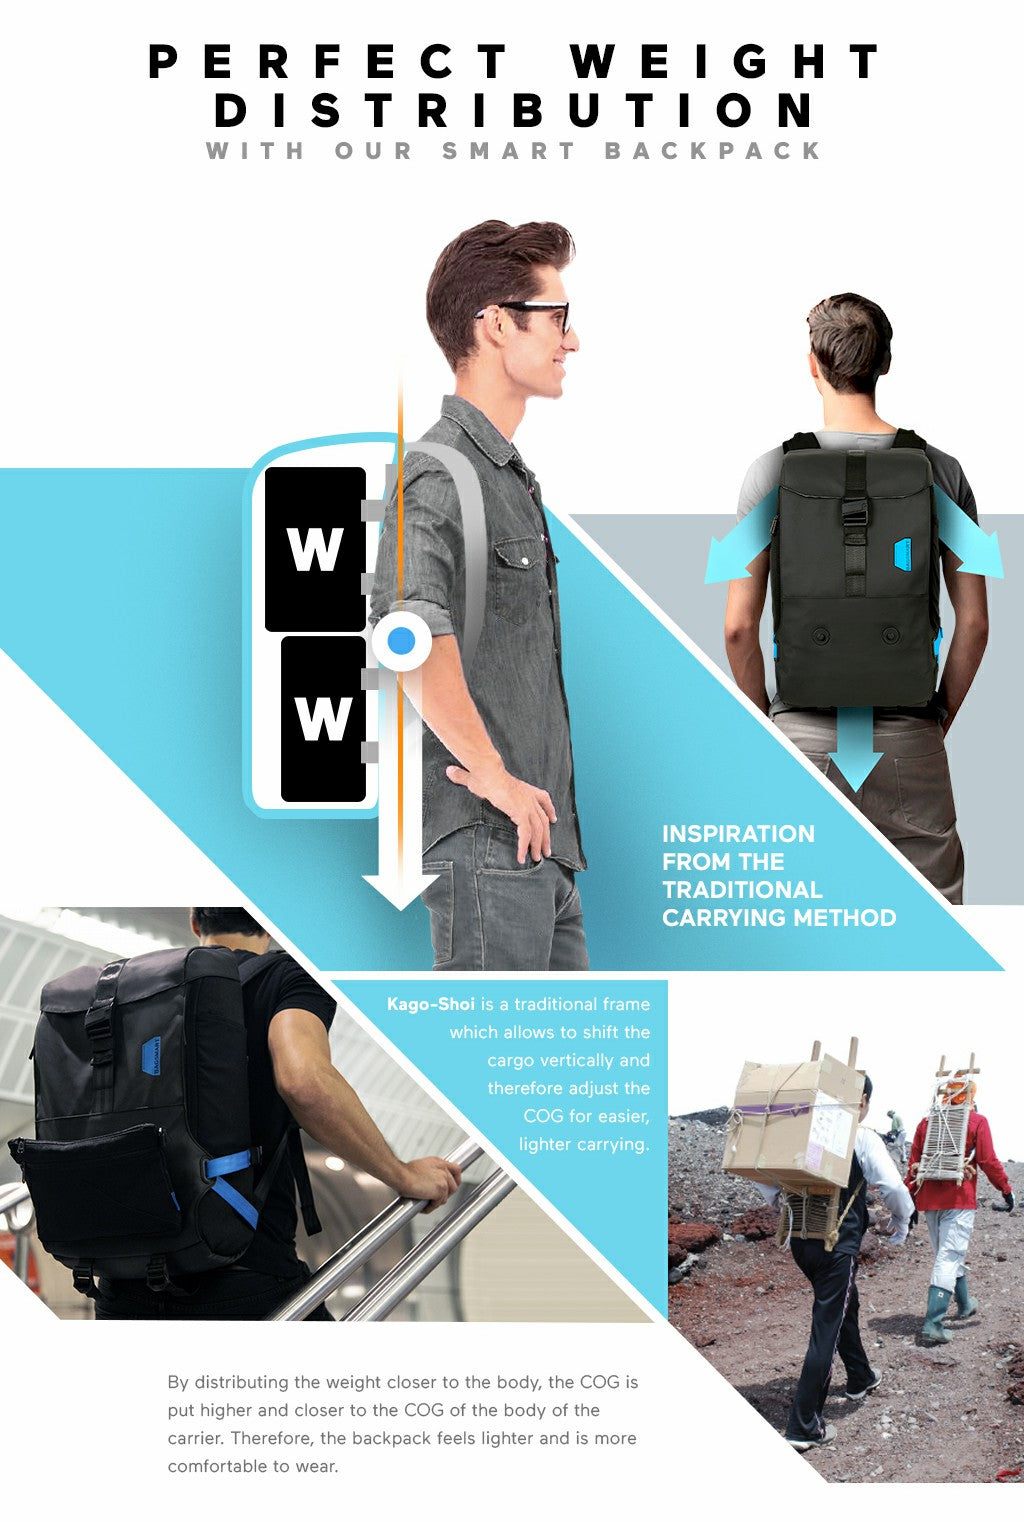 Inspiration from the traditional carrying method. Kago-Shoi is a traditional frame which allows to shift the cargo vertically and therefore adjust the COG for easier, lighter carrying. By distributing the weight closer to the body, the COG is put higher and closer to the COG of the body of the carrier. therefore, the backpack feels lighter and is more comfortable to wear.